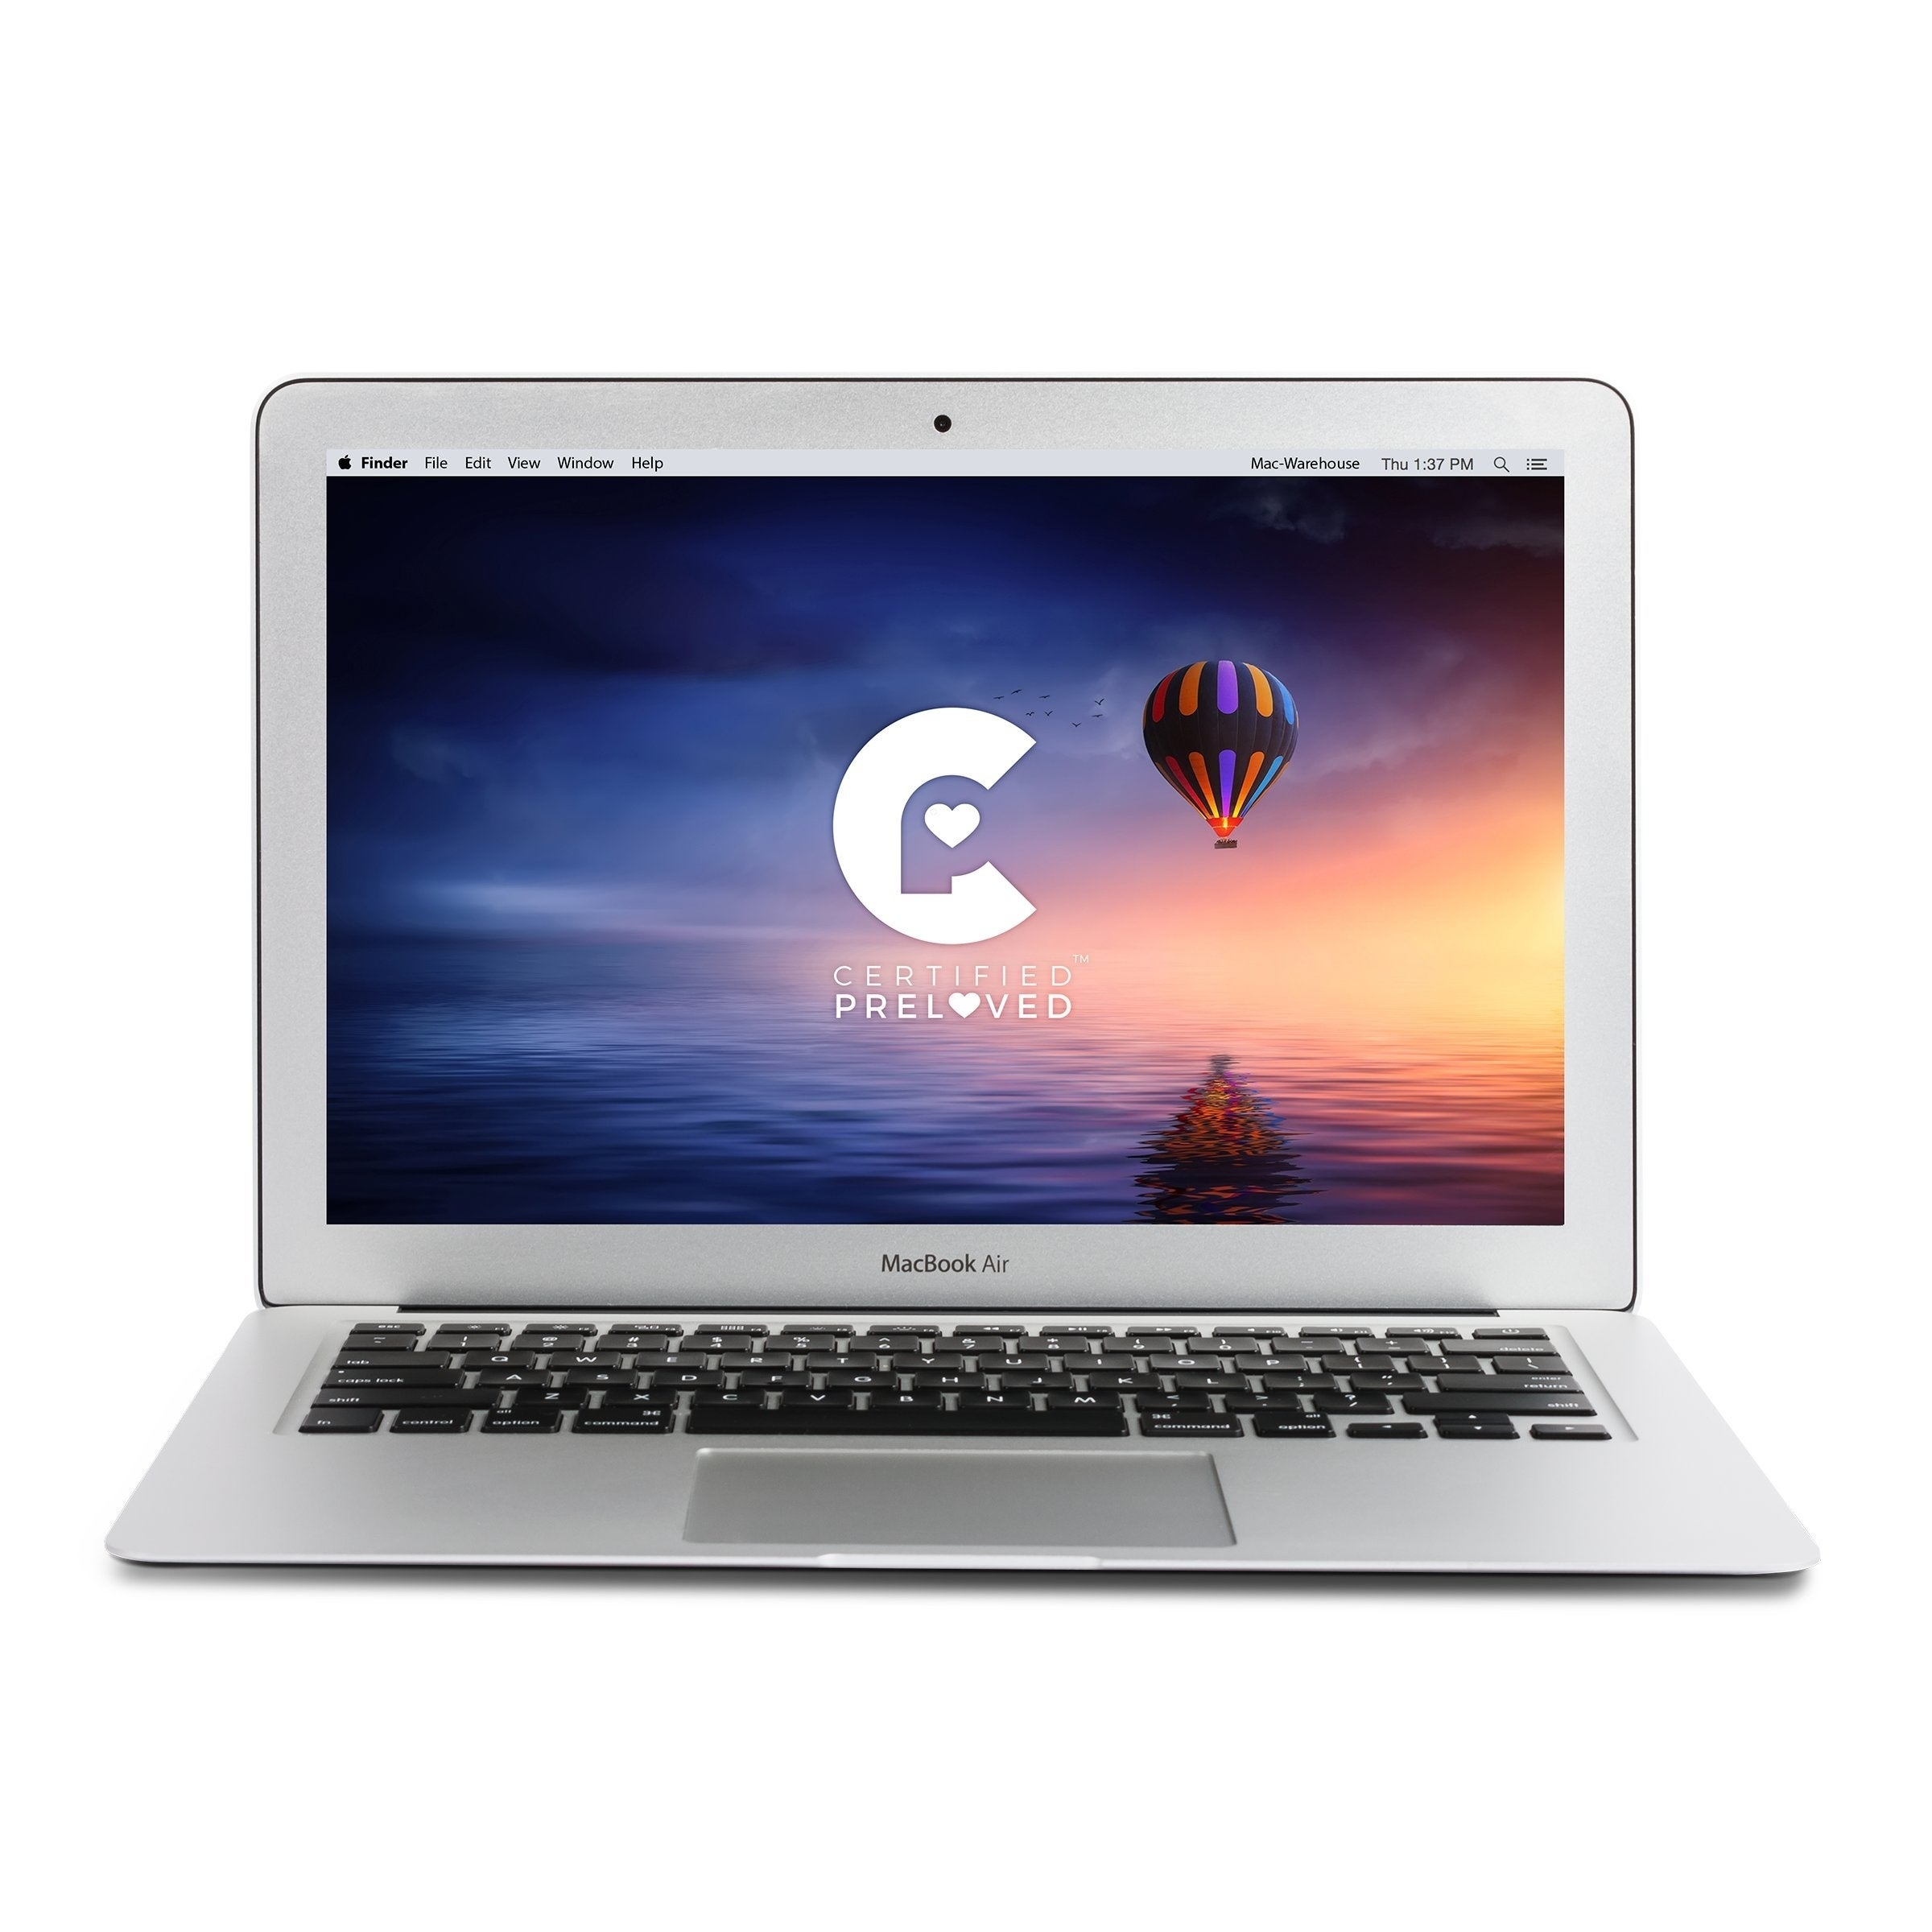 Apple MD761LL/B 13.3 inch MacBook Air DCi5 1.4 GHz - Refurbished by Overstock 512gb flash - 8 GB